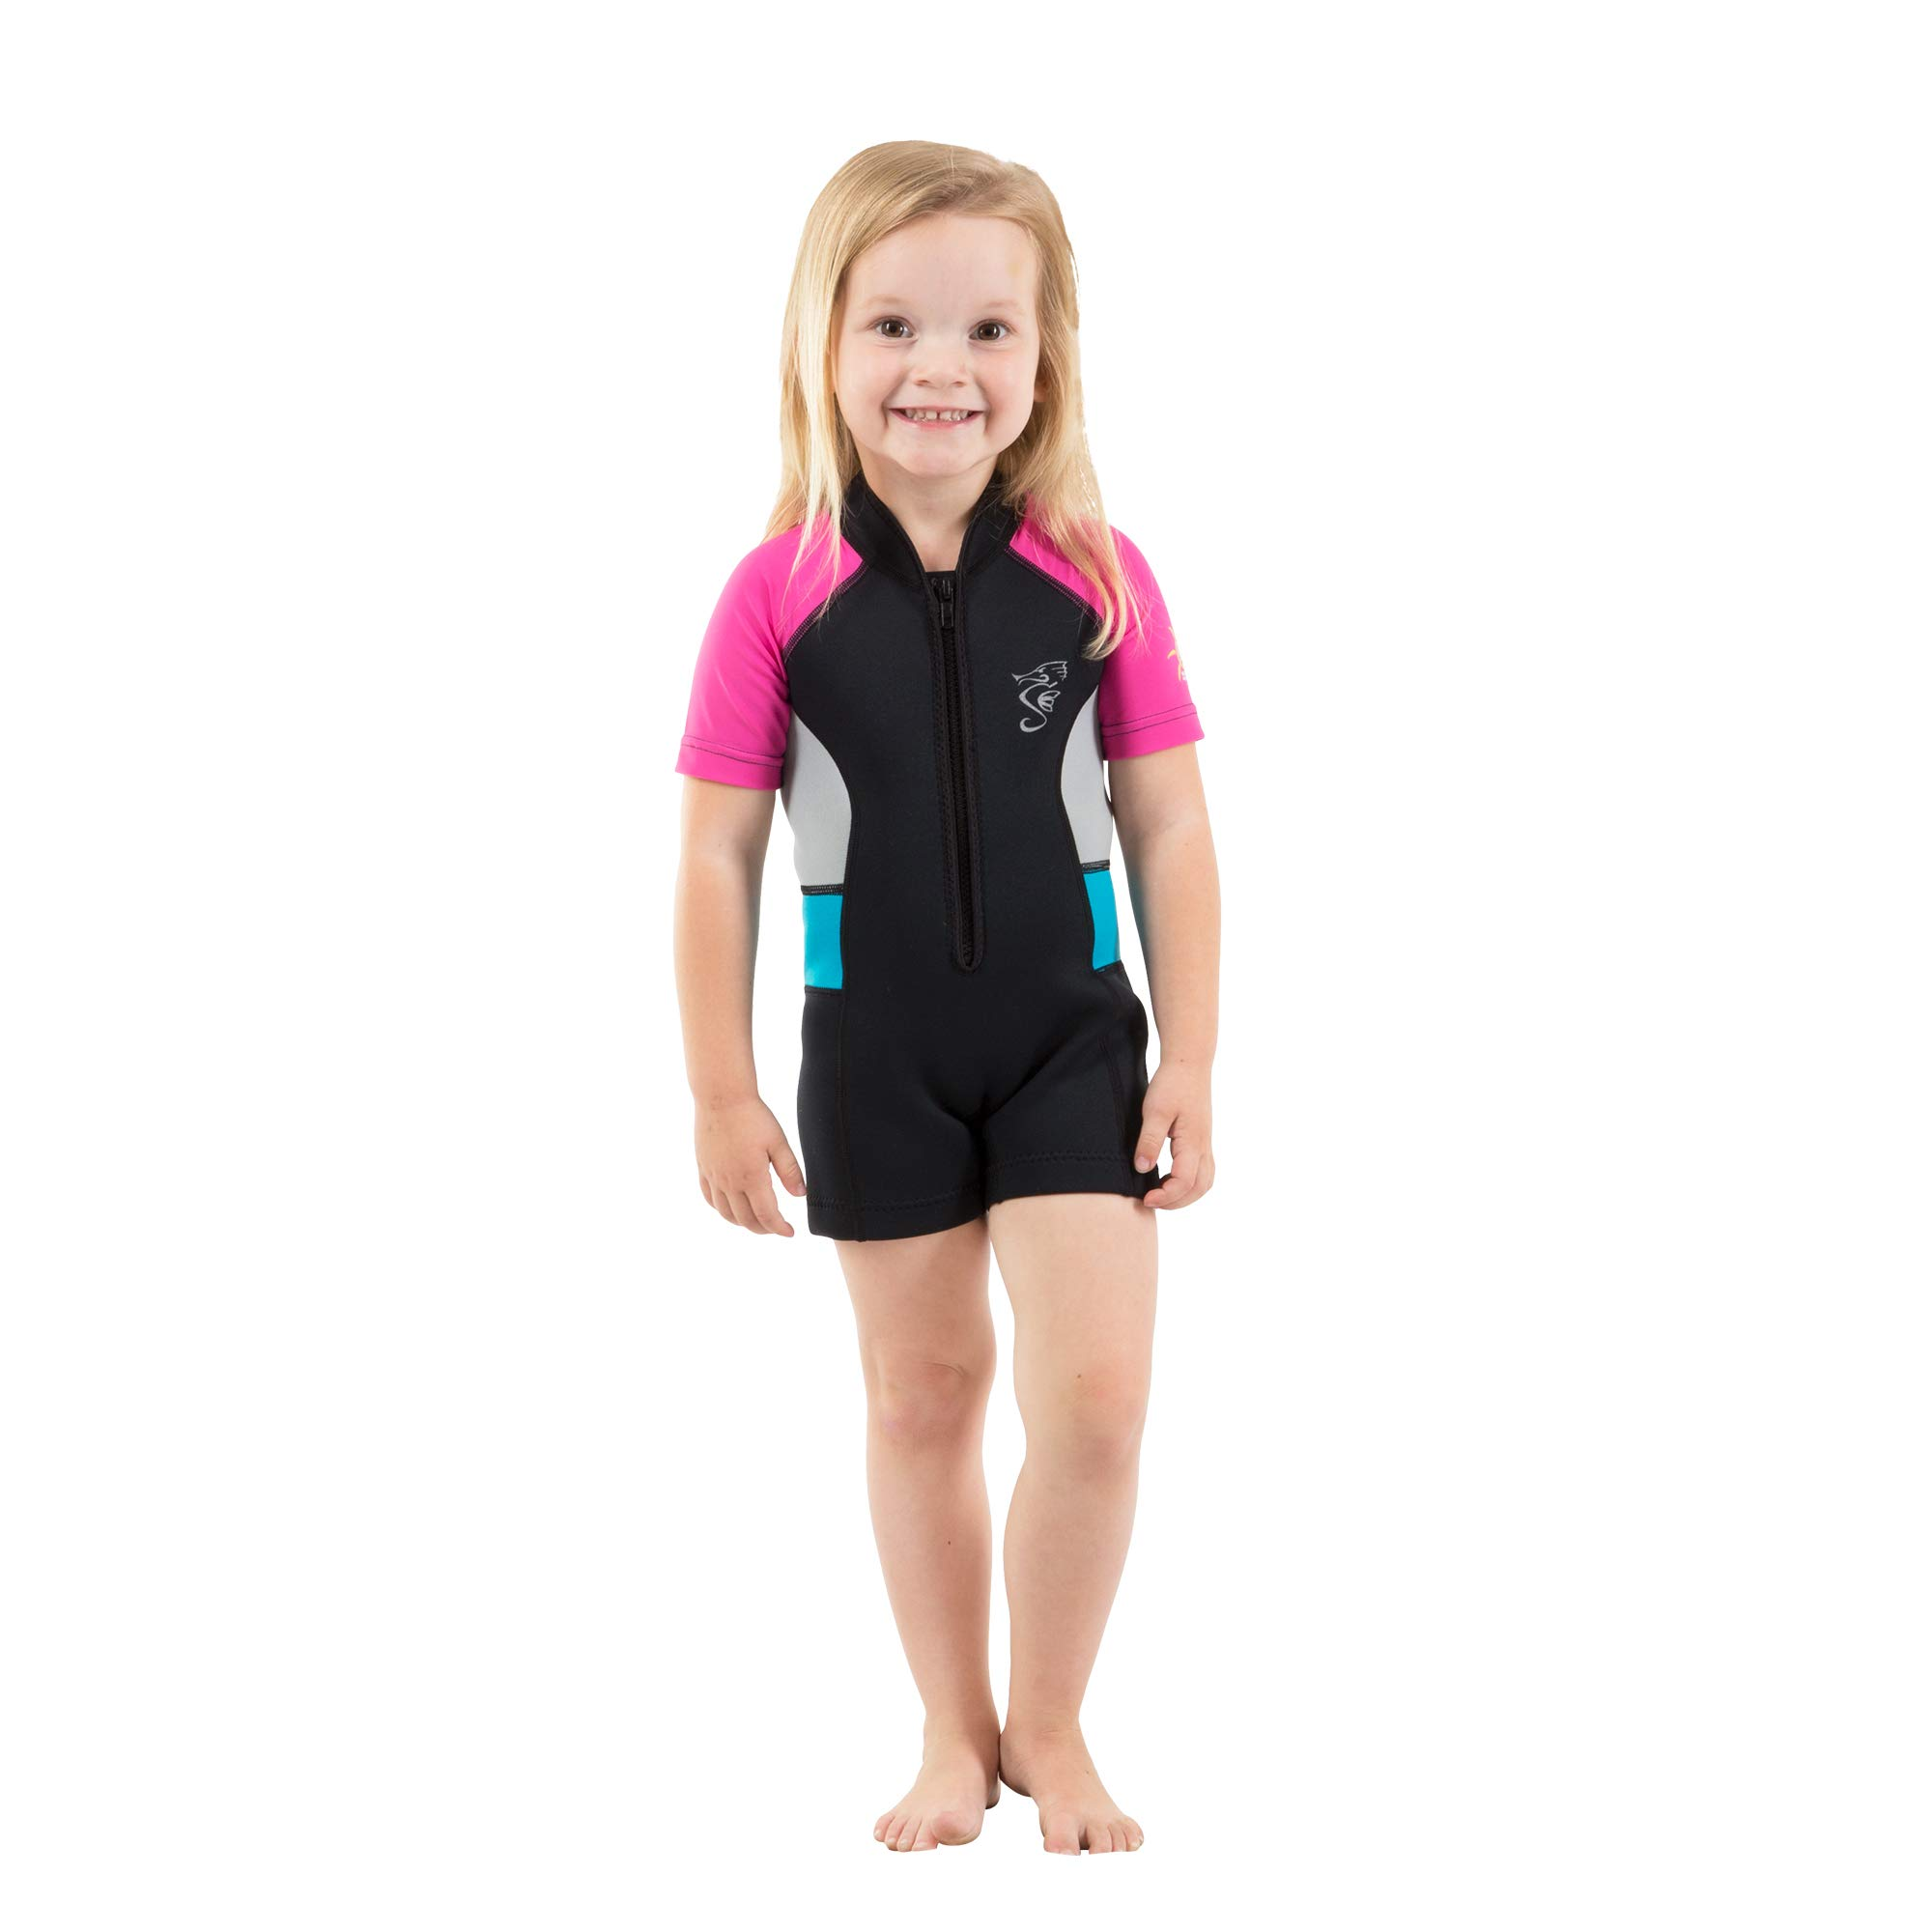 Seavenger Cadet 2mm Kids Shorty | Child Neoprene Wetsuit for Snorkeling, Surfing and Swimming (Hot Pink, 6/6X) by Seavenger